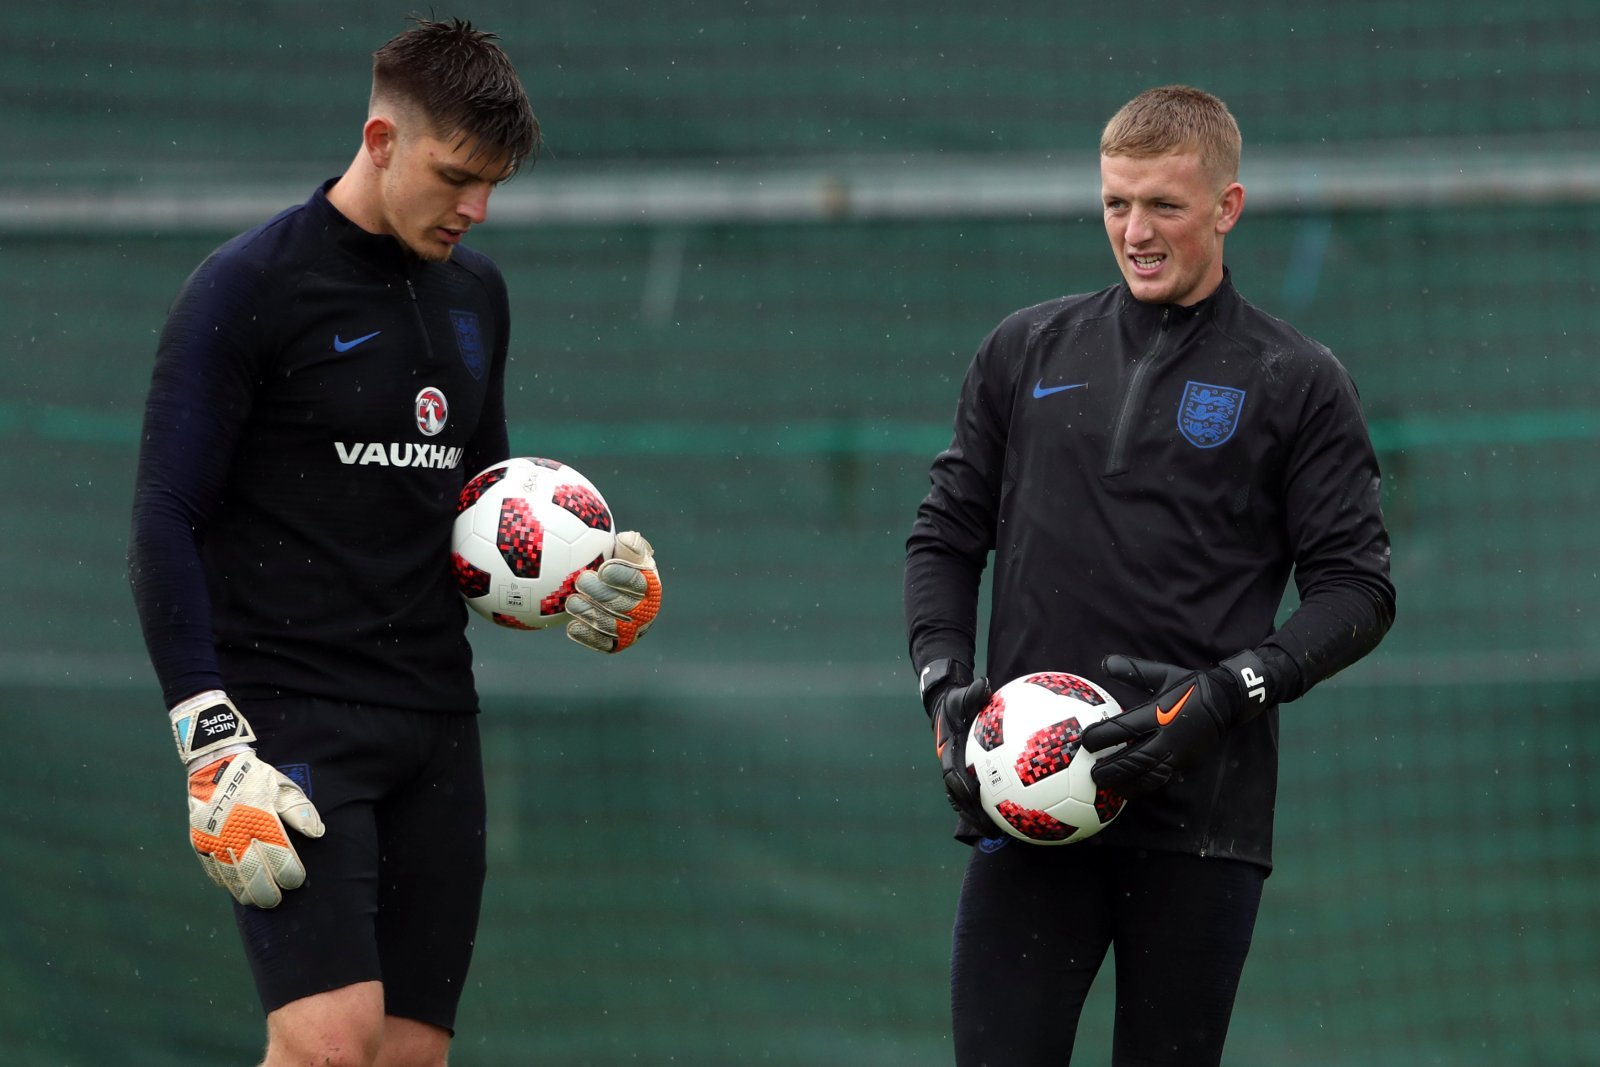 Nick Pope and Jordan Pickford can fight an Everton battle for the ages